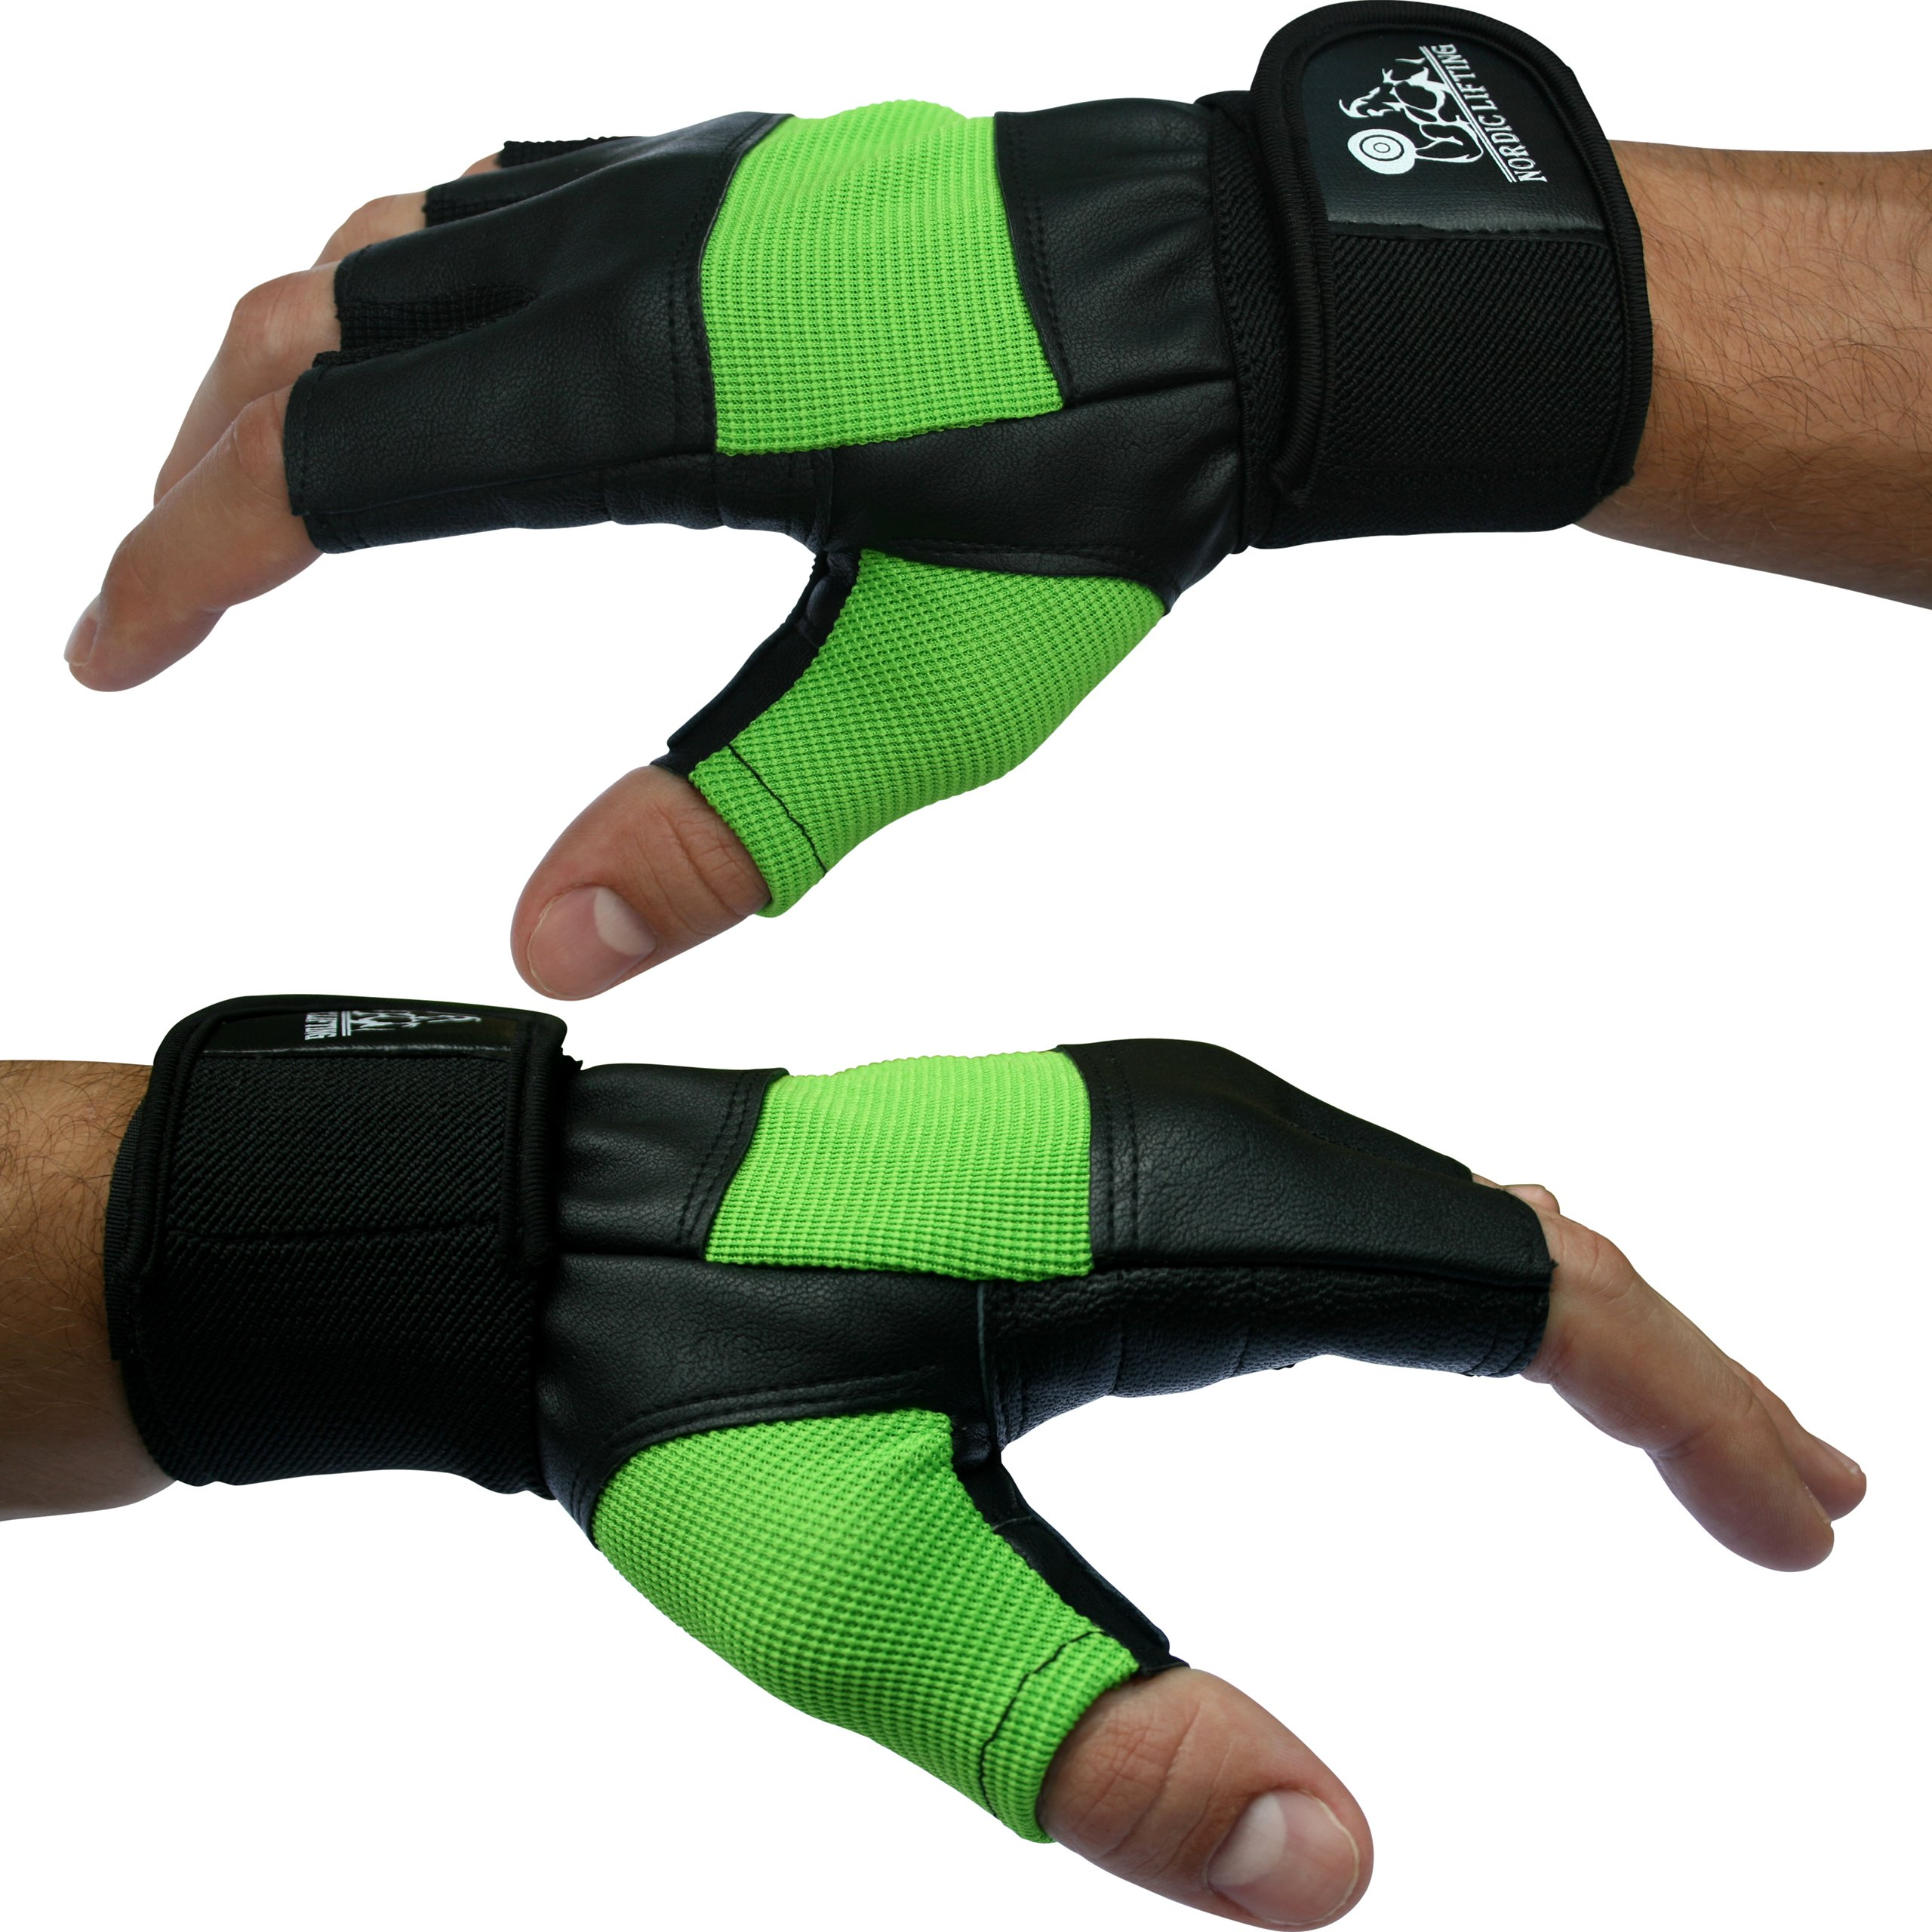 Weight Lifting Gloves with 12'' Wrist Support for Gym Workout, Weightlifting, Fitness & Cross Training - Best for Men & Women - by Nordic Lifting&Trade -(Green,XLarge)-1 Year Warranty by Nordic Lifting